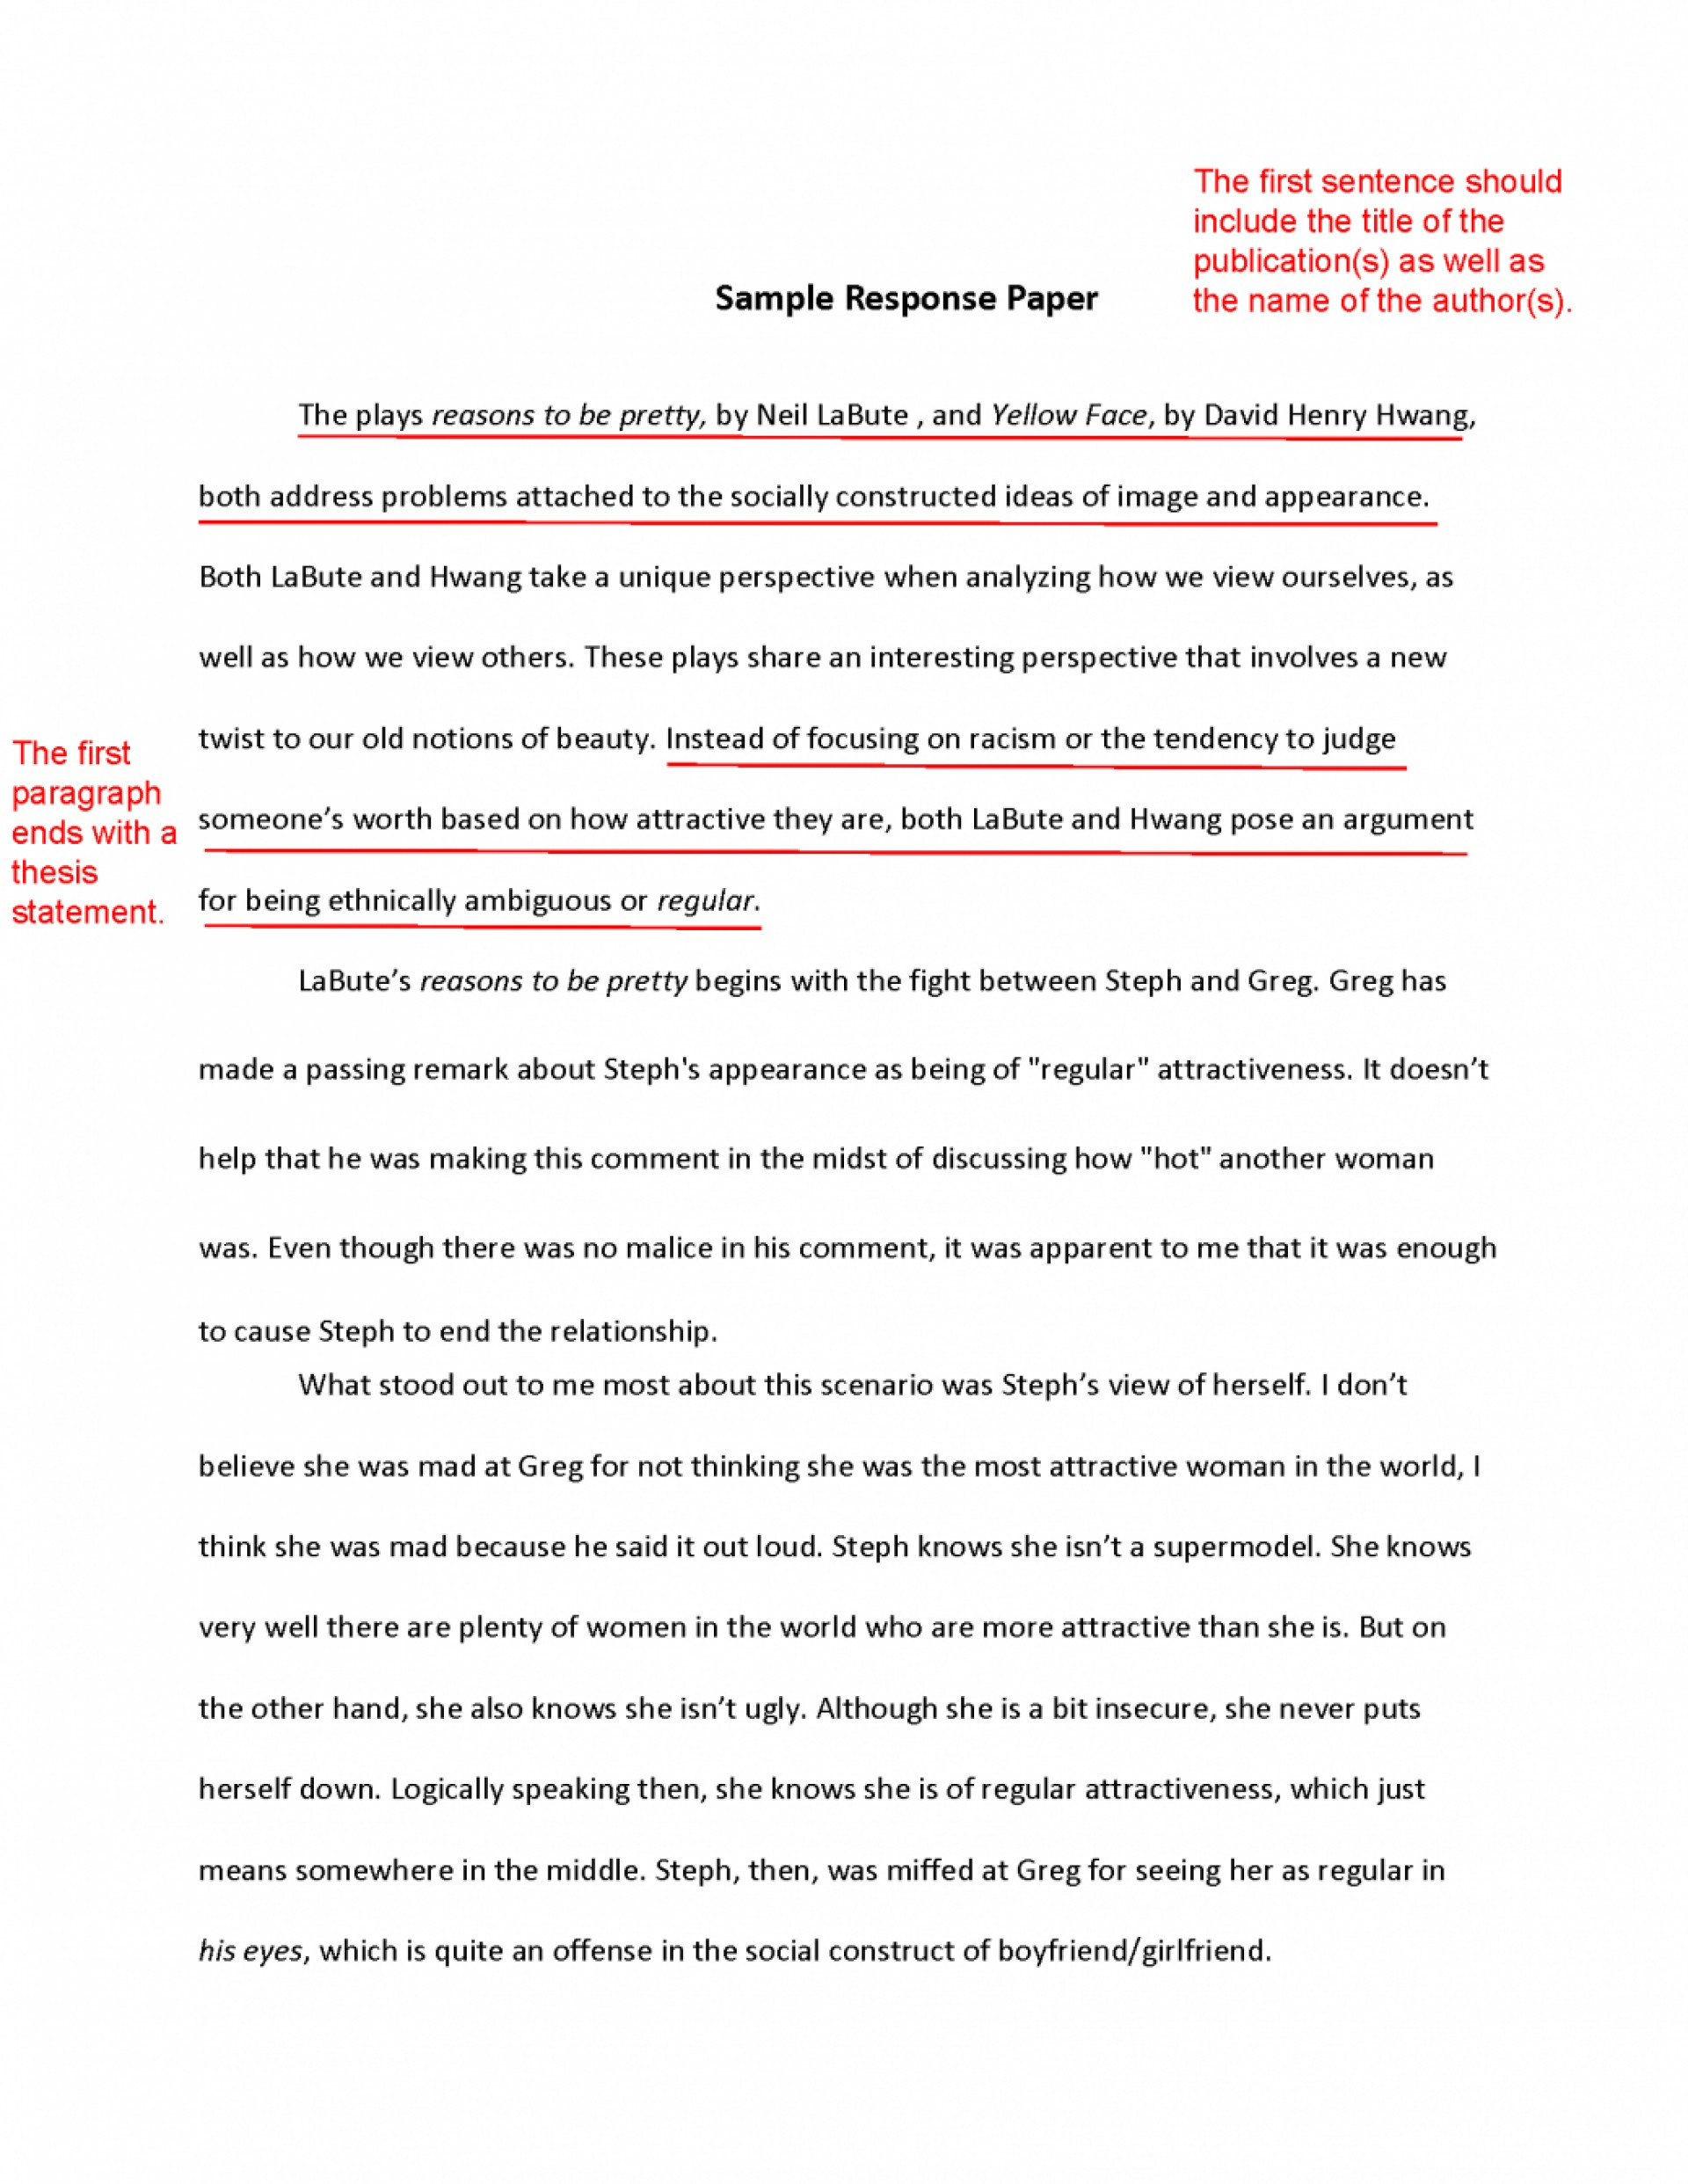 001 Essay Template Responce Paper College Board Synthesis Example History Sample Essays Papers Education And 1038x1343 English Research Impressive Format Mla 1920